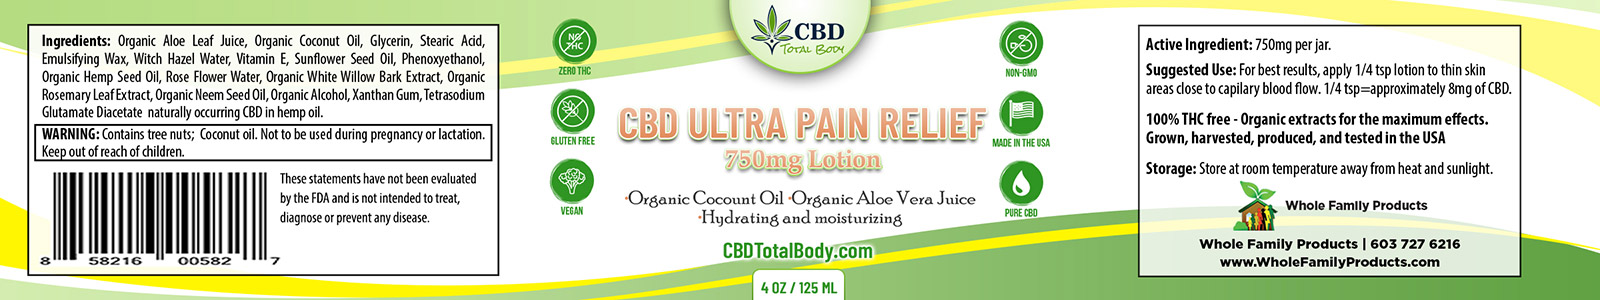 CBD Ultra Pain Relief 750mg Label